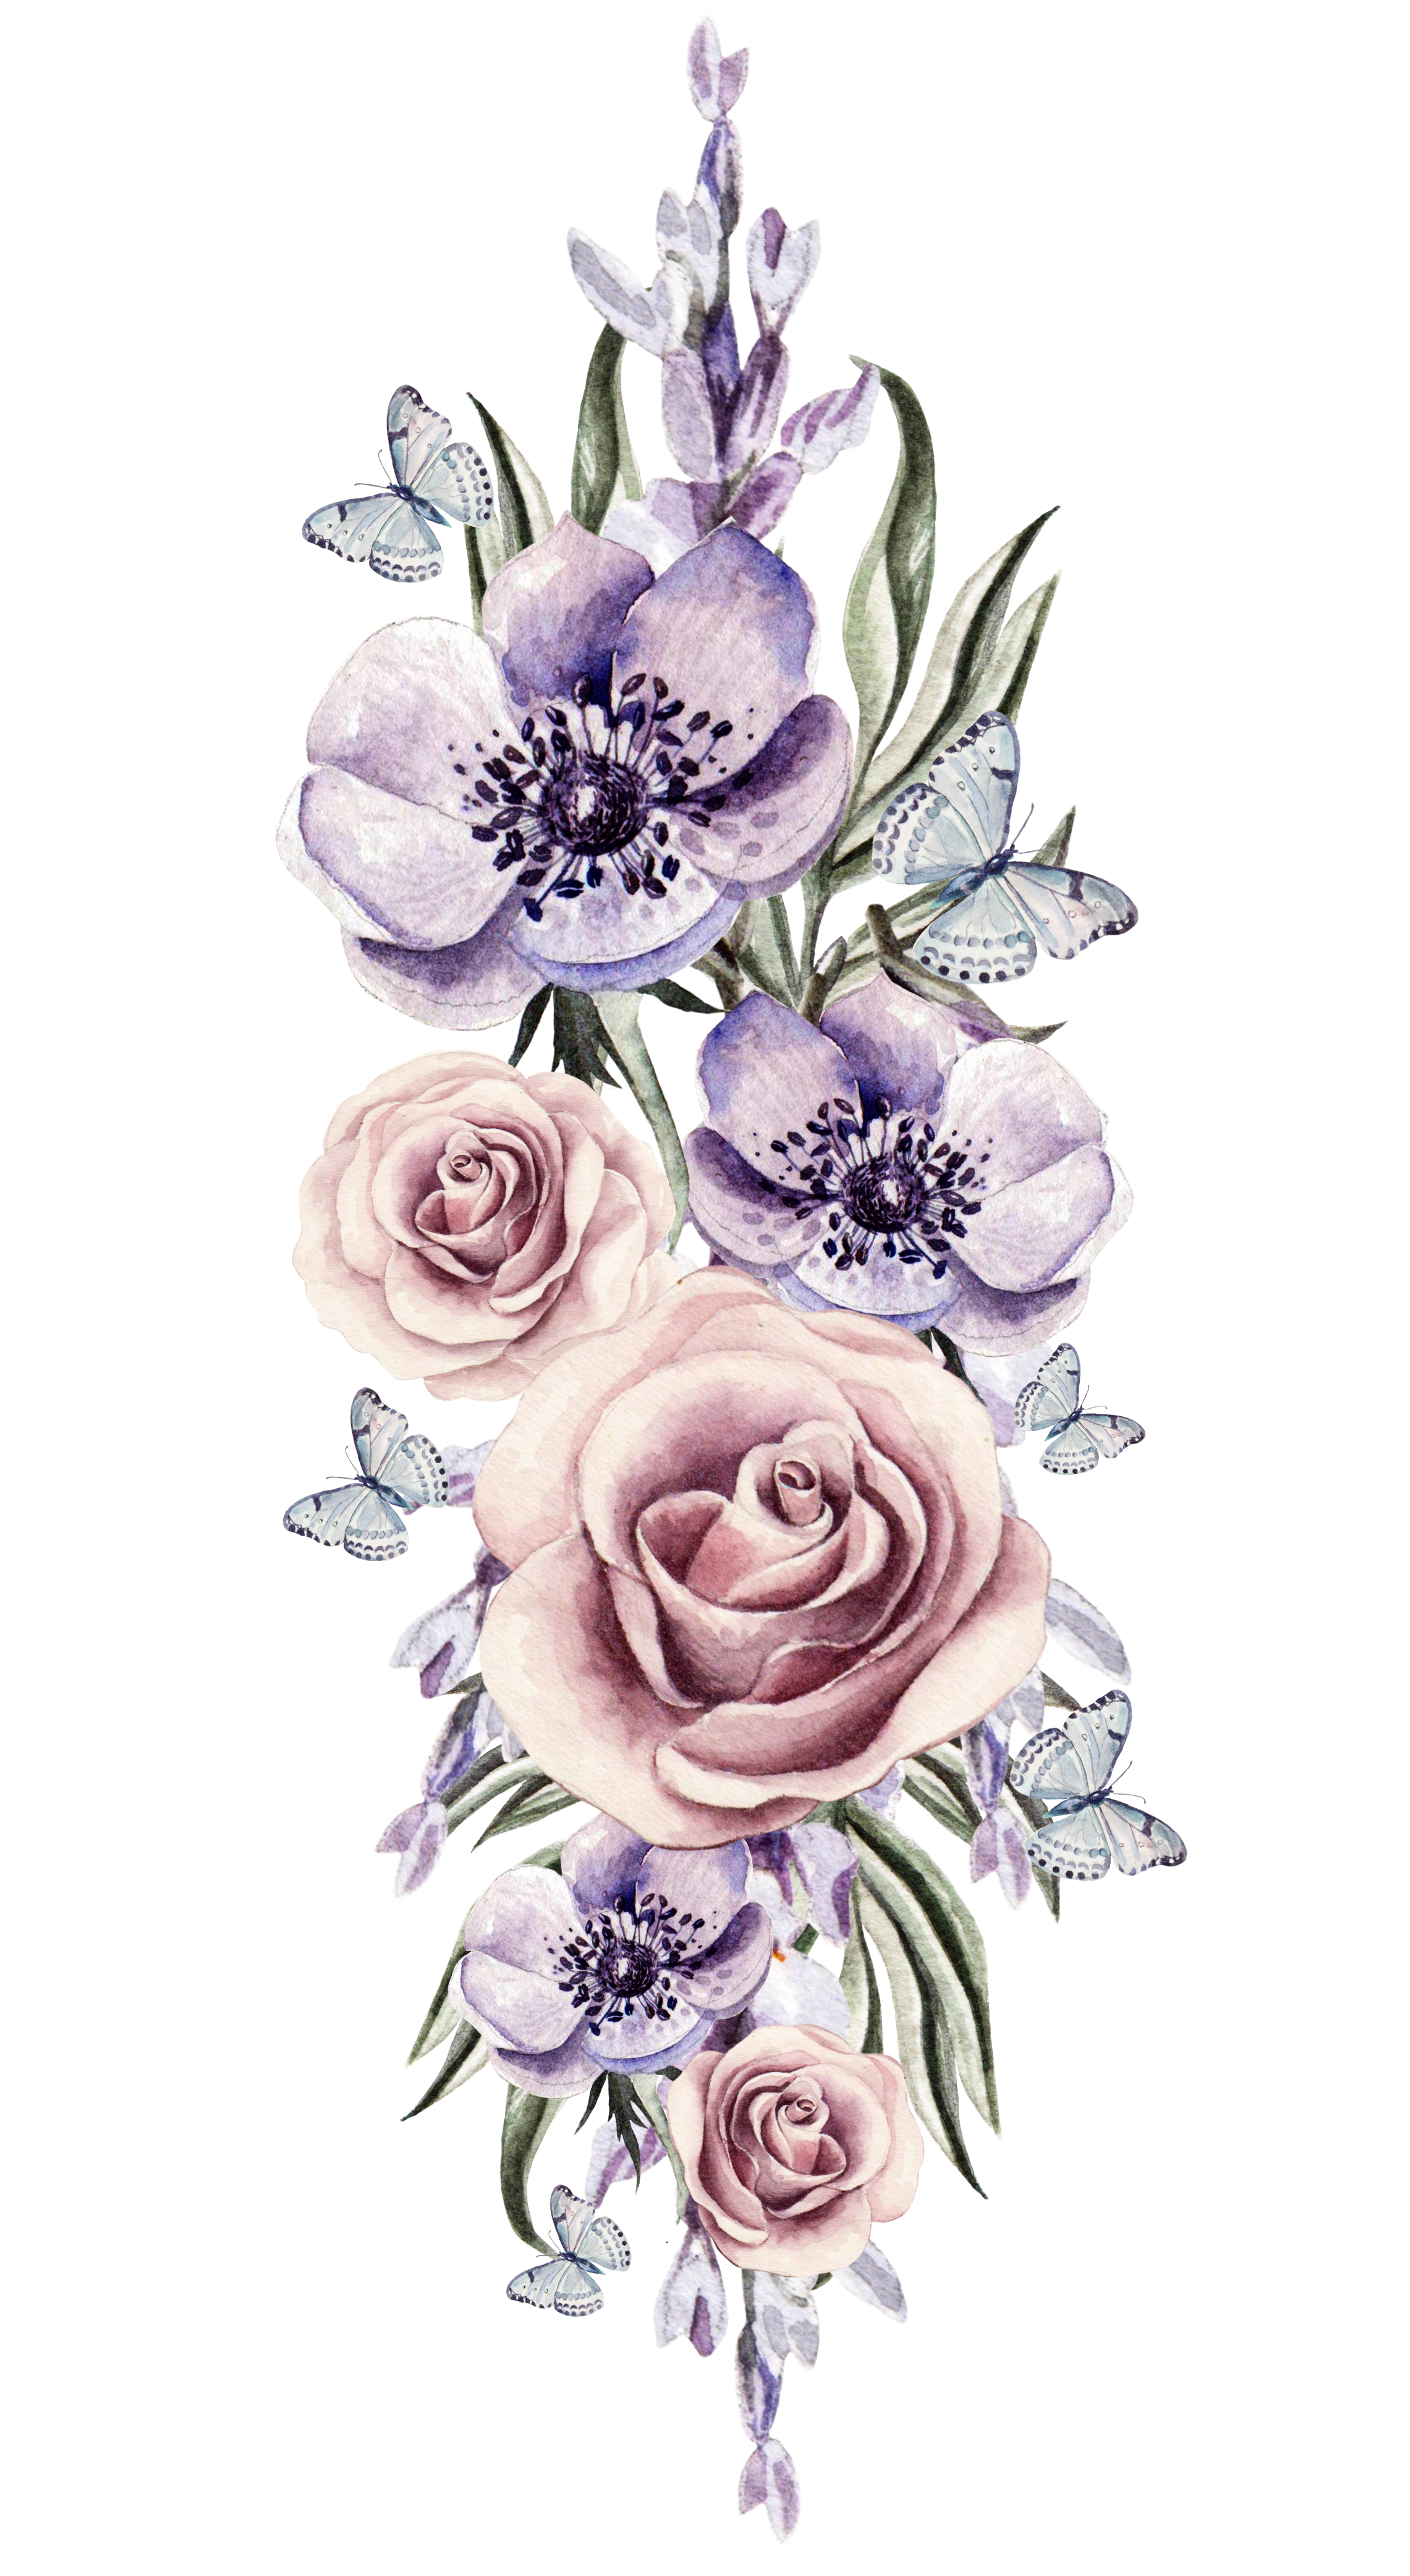 Watercolor Flowers Png, Vector, PSD, and Clipart With.